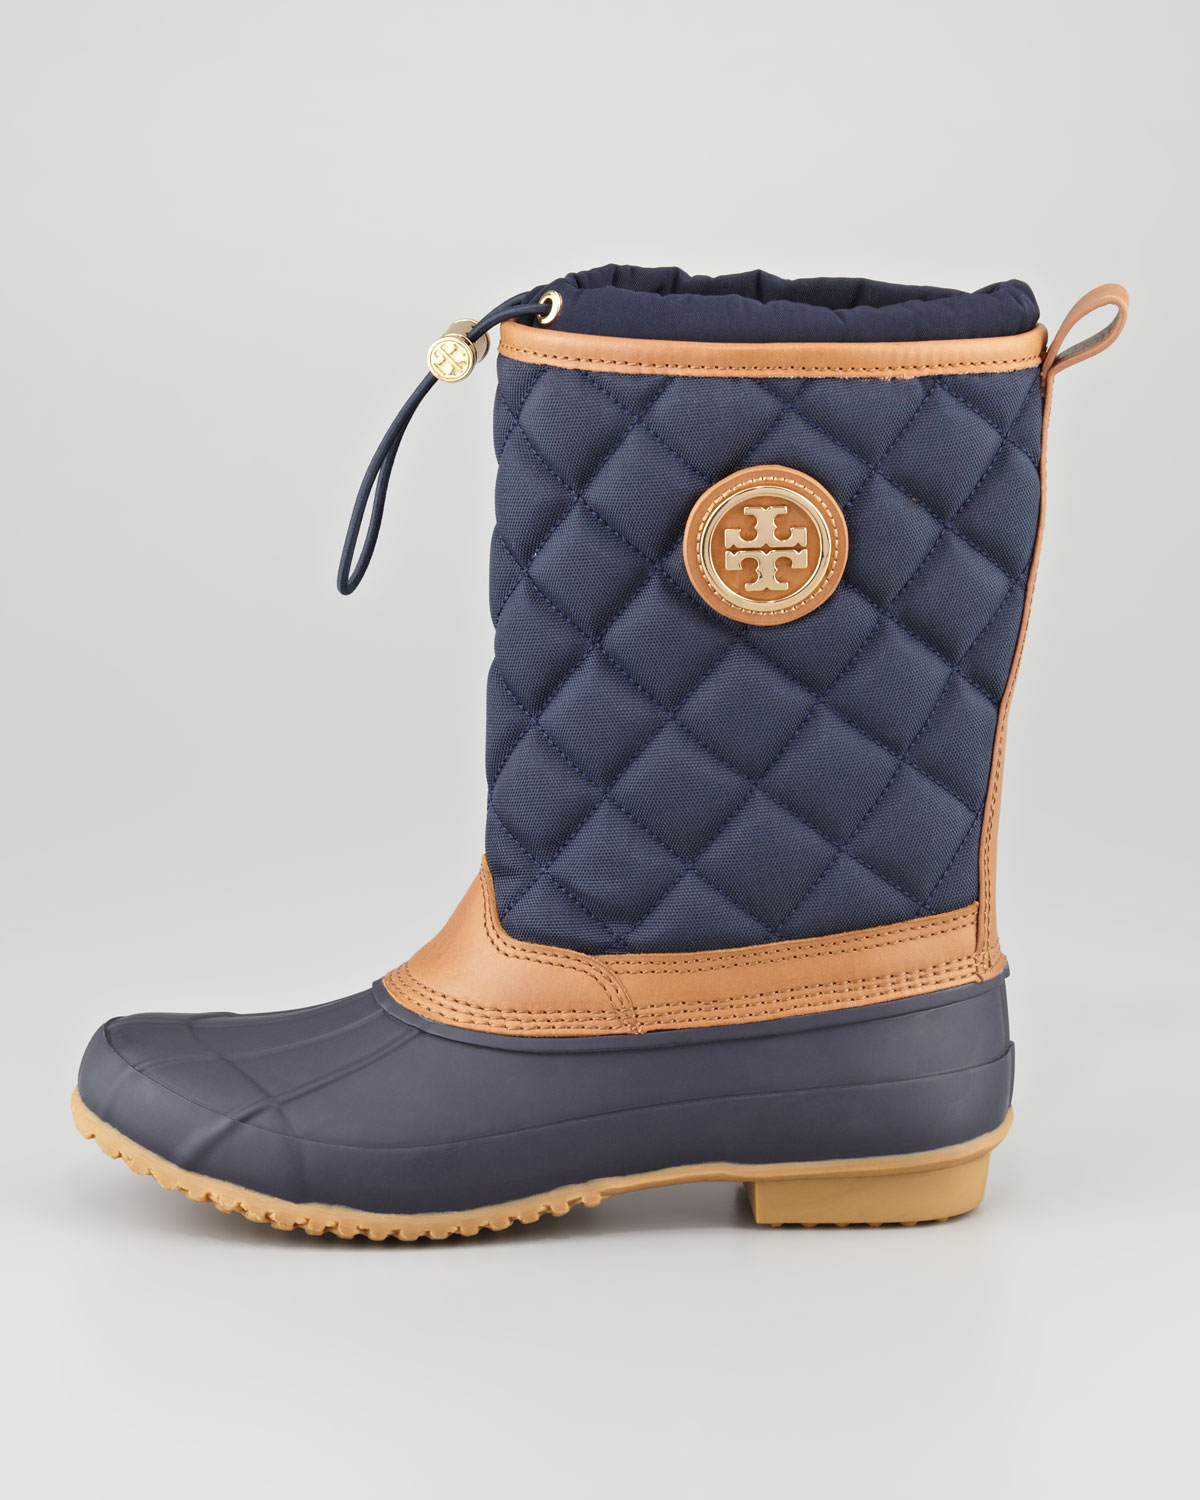 Lyst Tory Burch Denal Quilted Rain Boot Bright Navy In Blue